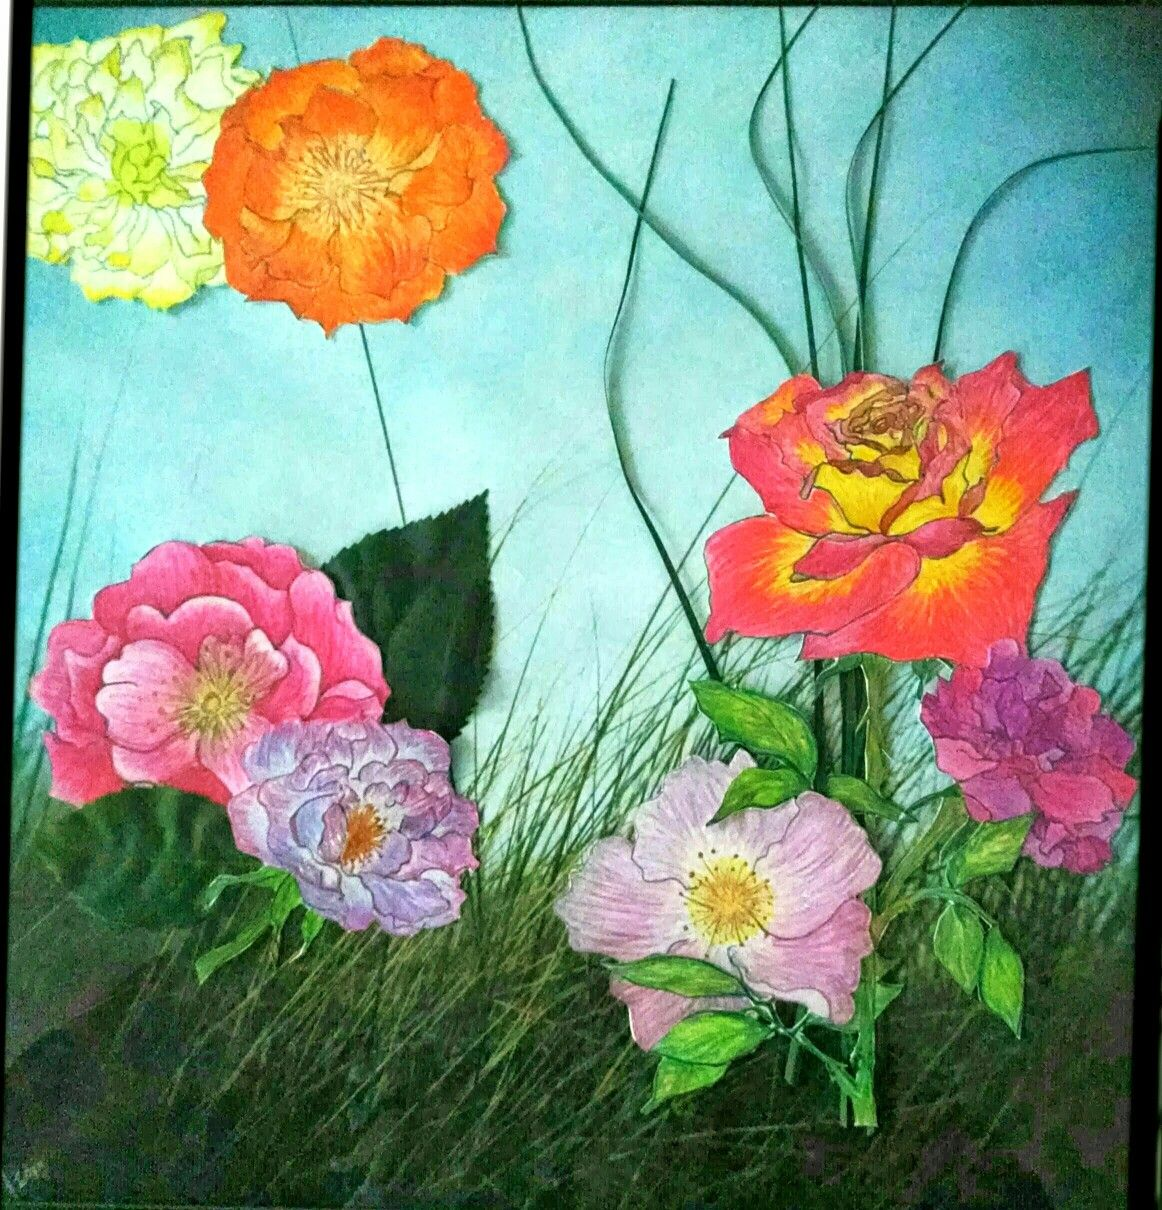 Flowers Colored pencil drawing Gypsy Rose Design by Amy Fetterling ...